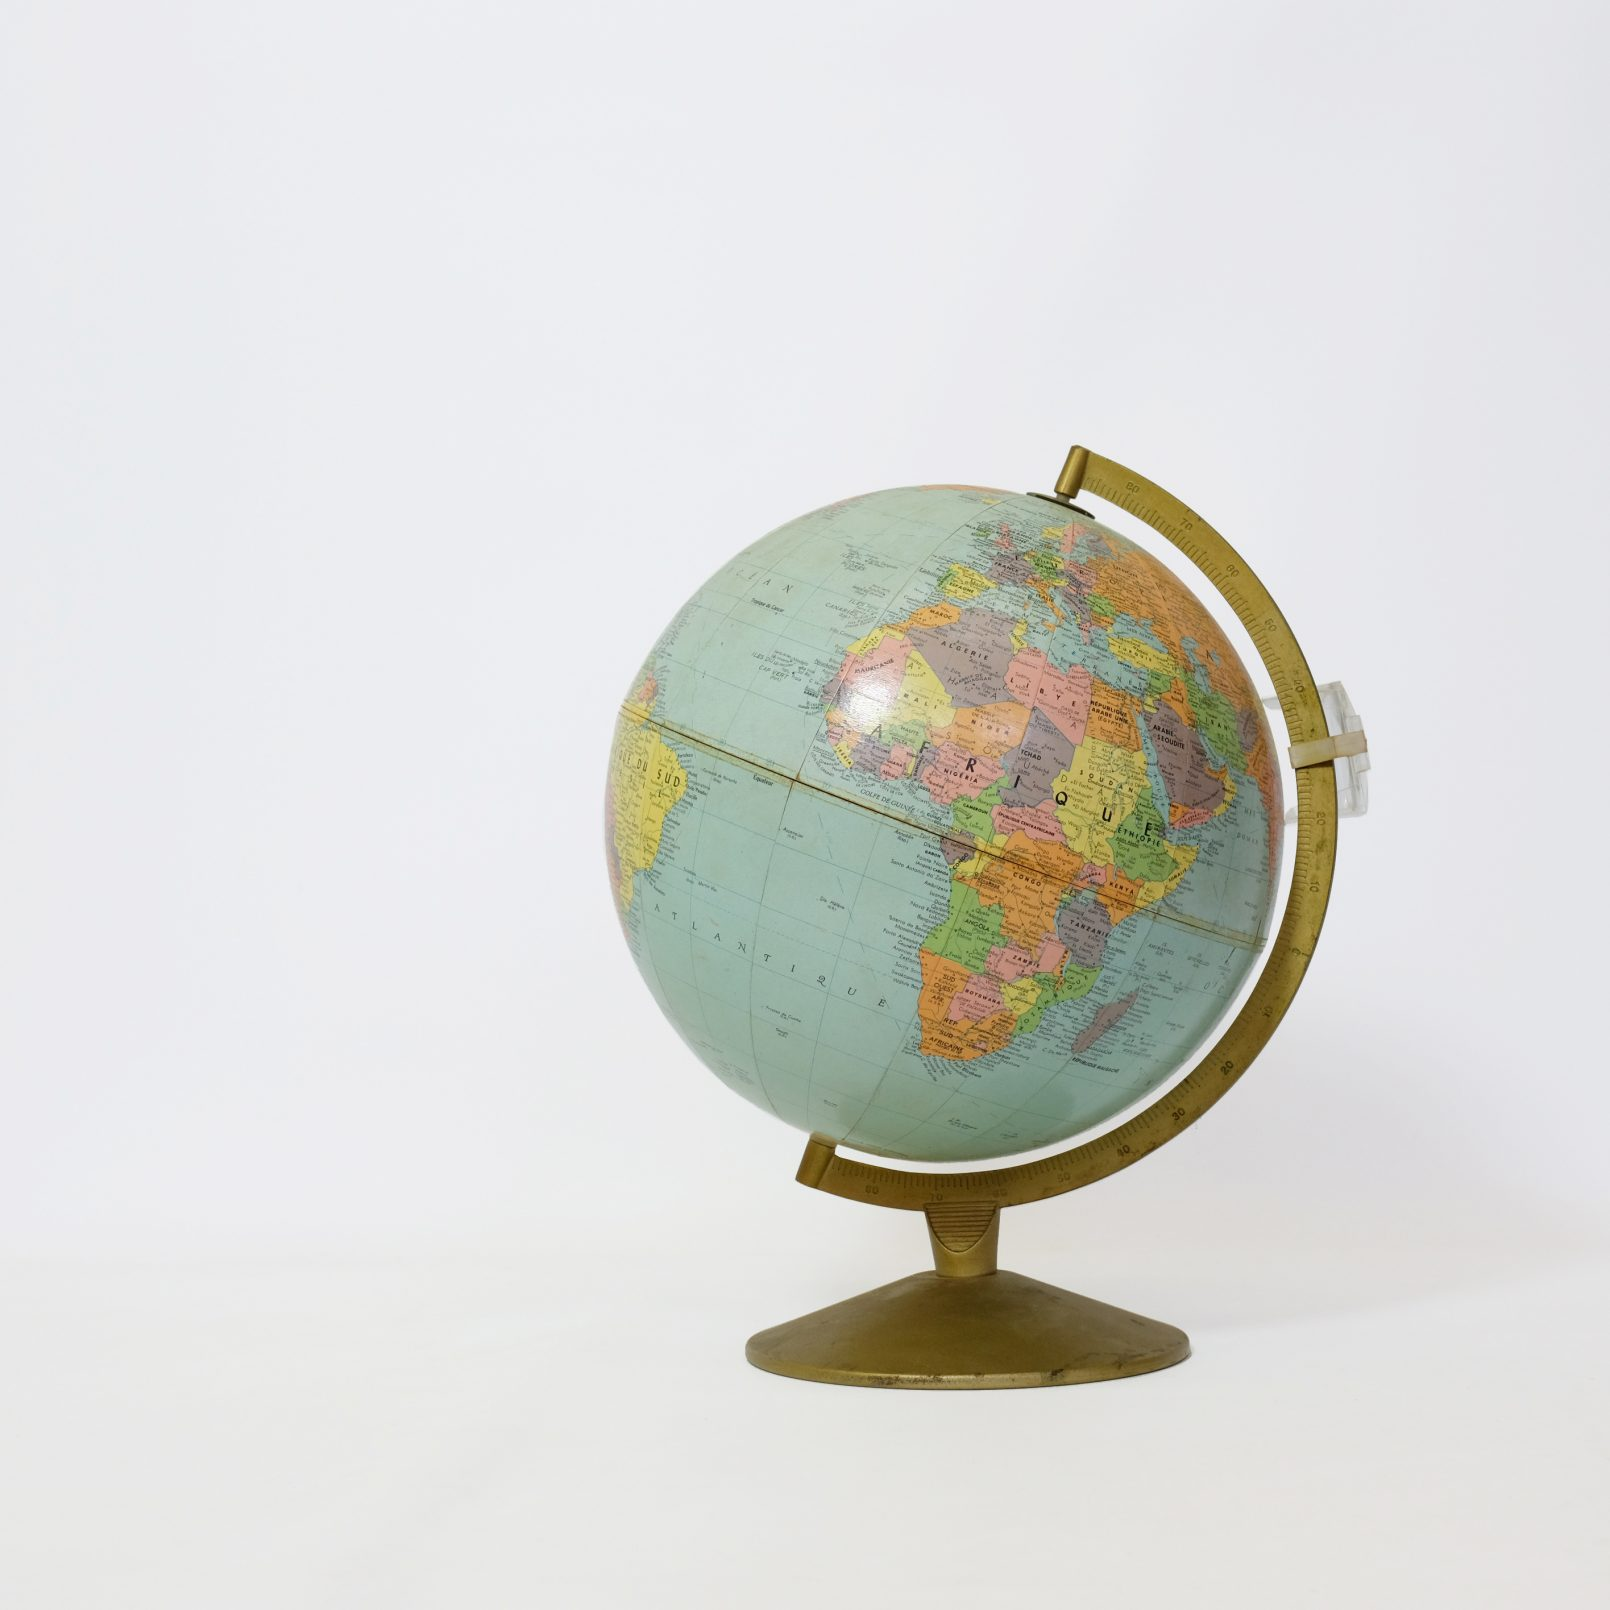 Large world globe produced by Taride in the sixties.